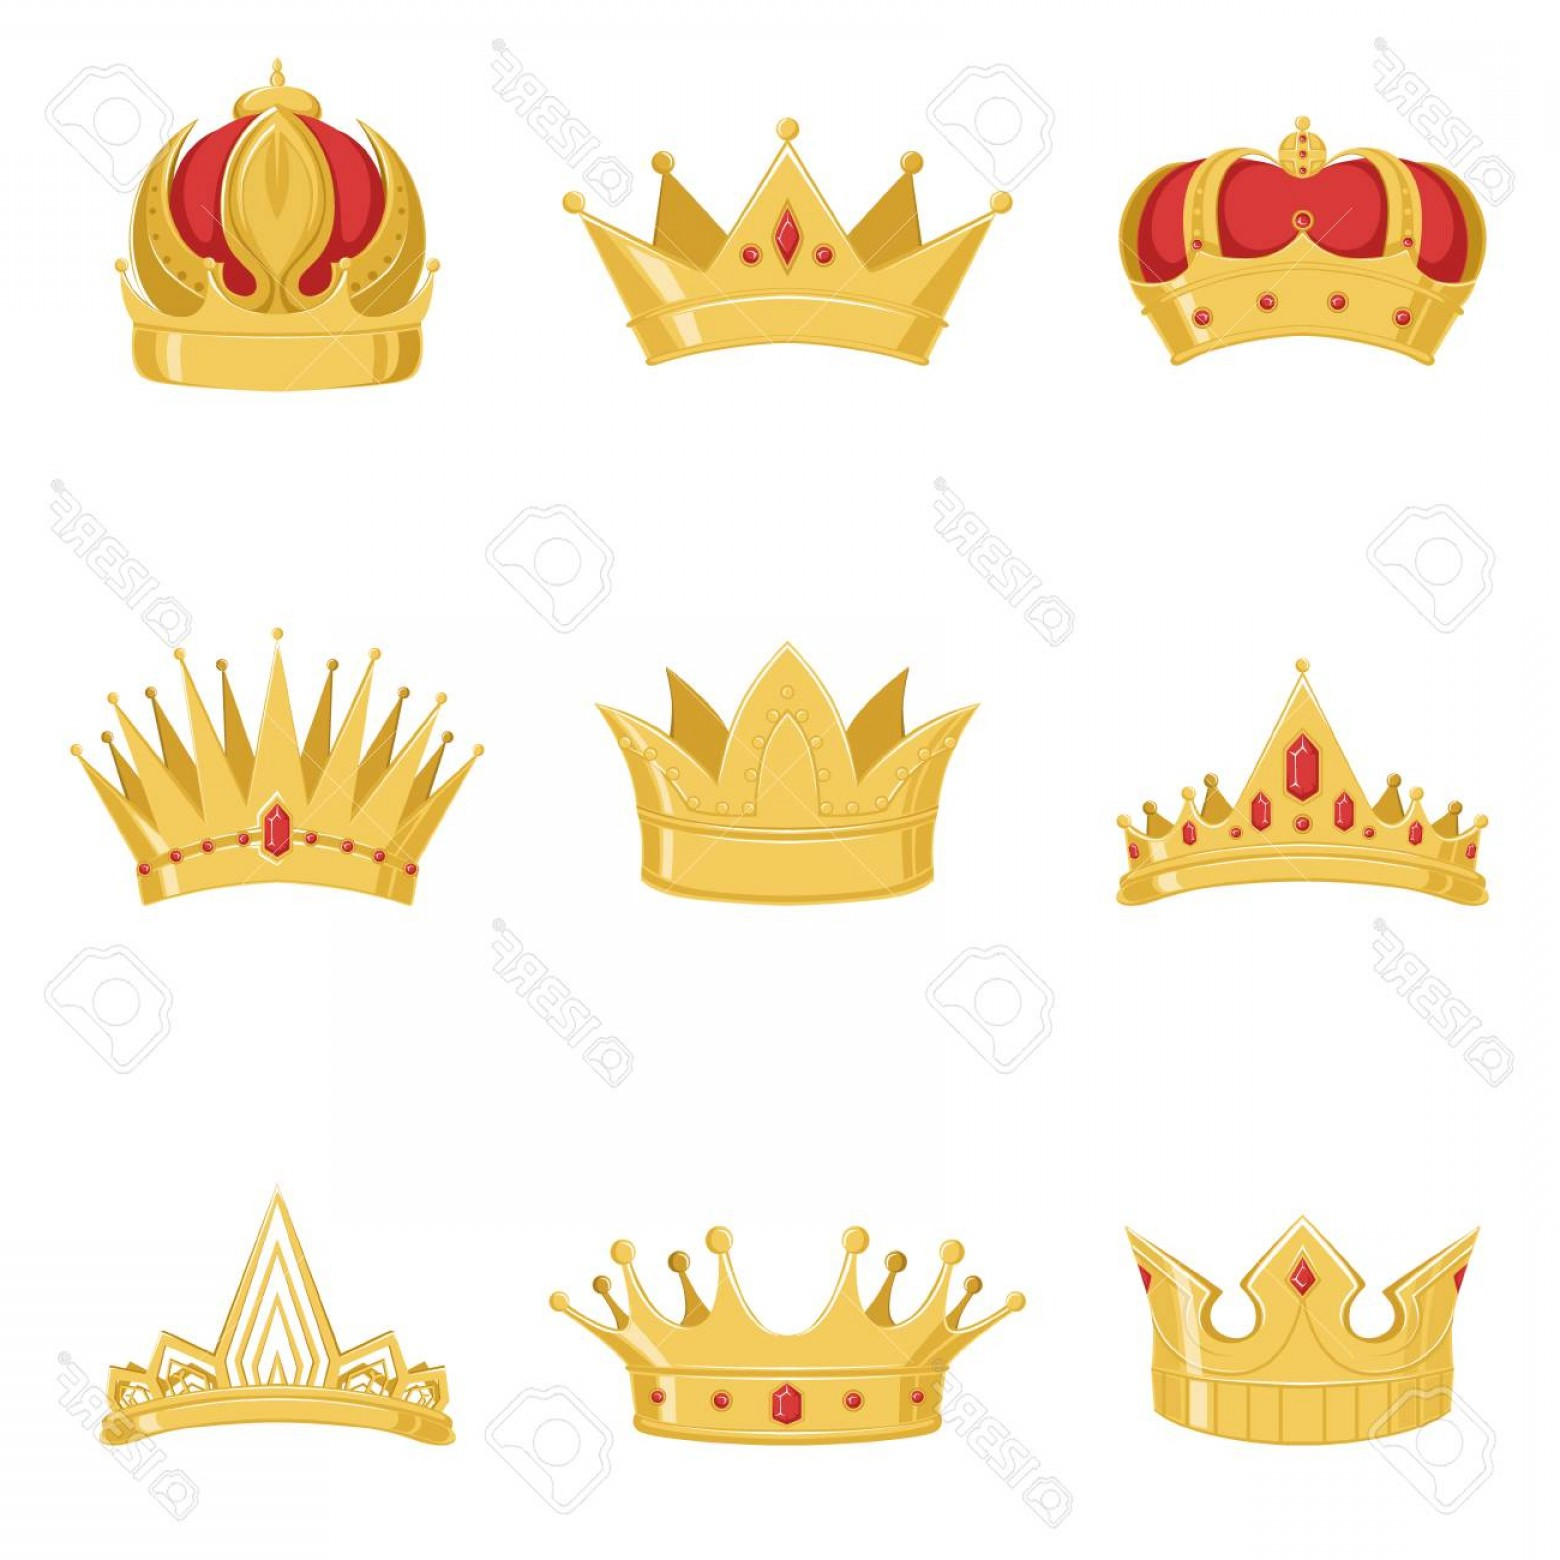 King And Queen Vector: Photostock Vector Royal Golden Crowns Set Symbols Of Power Of The King And Queen Vector Illustrations On A White Backg